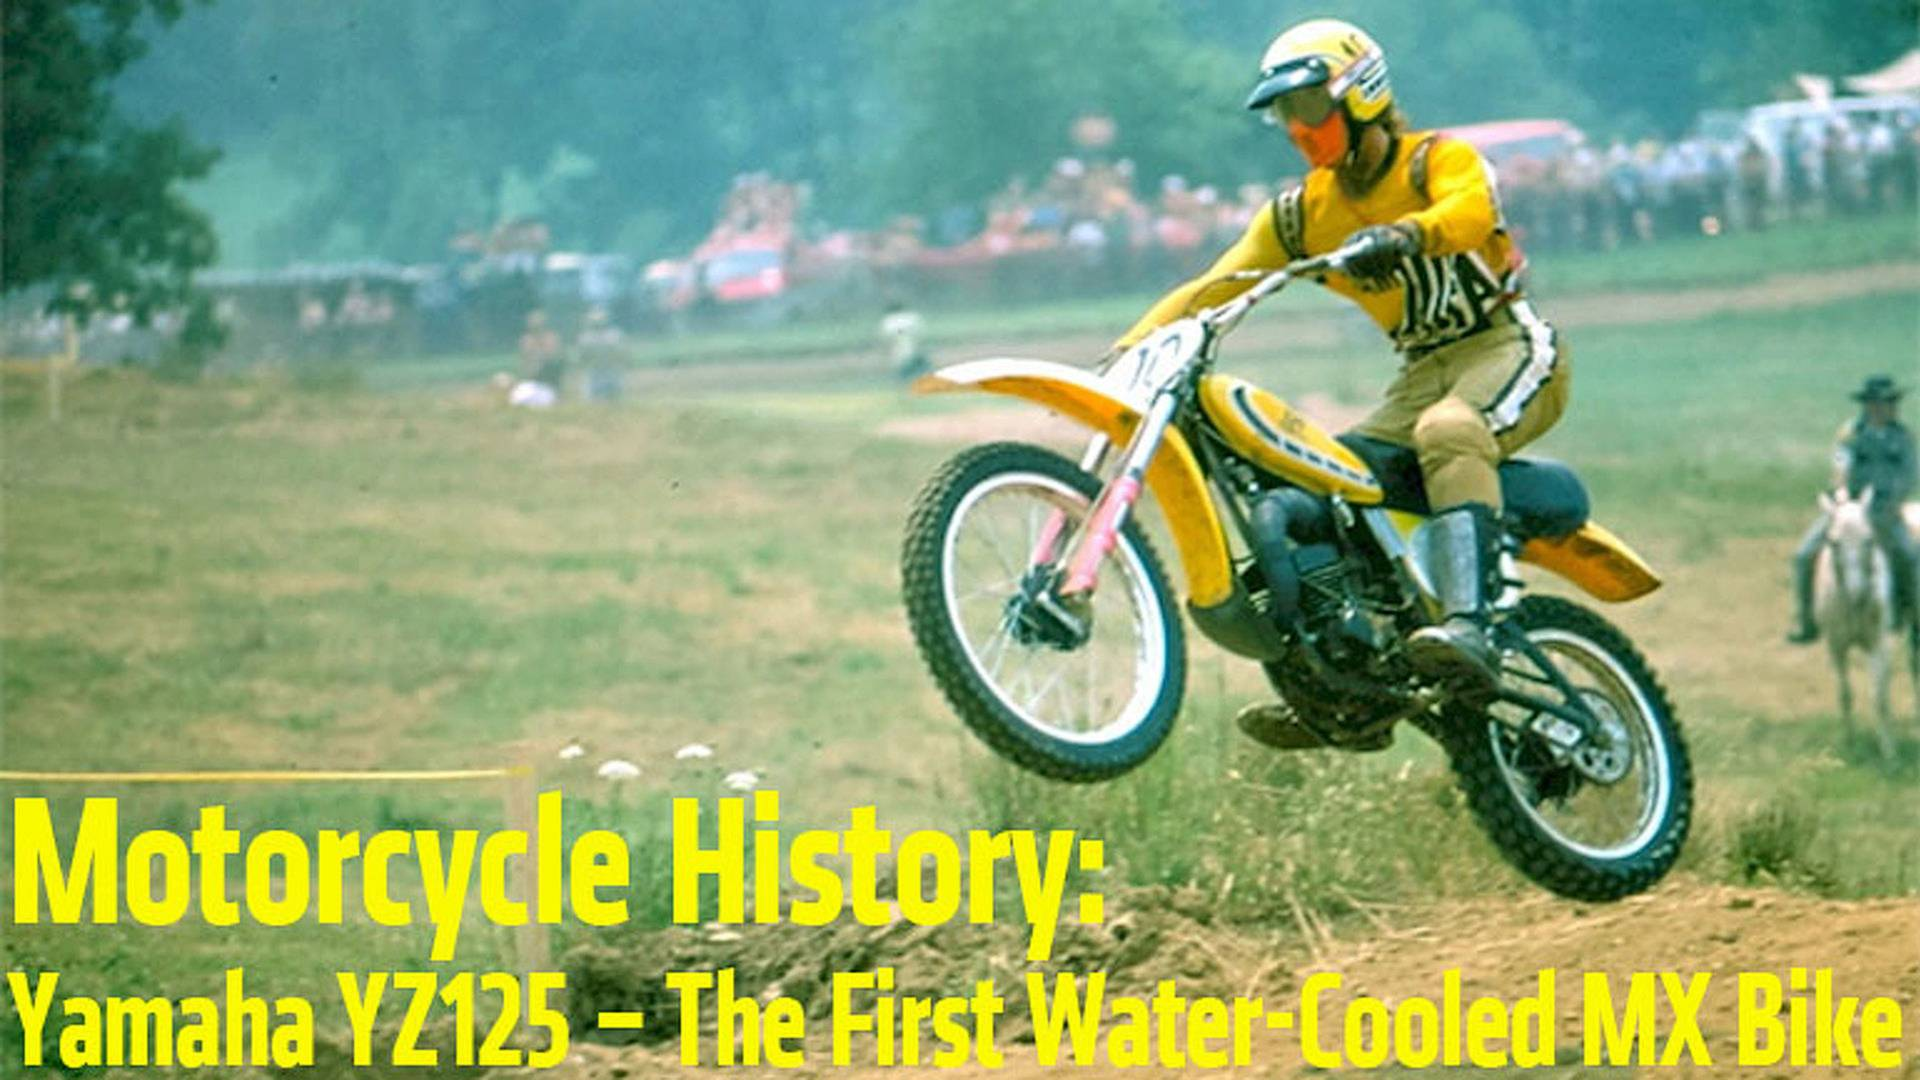 Motorcycle History: Yamaha YZ125 – The First Water-Cooled MX Bike